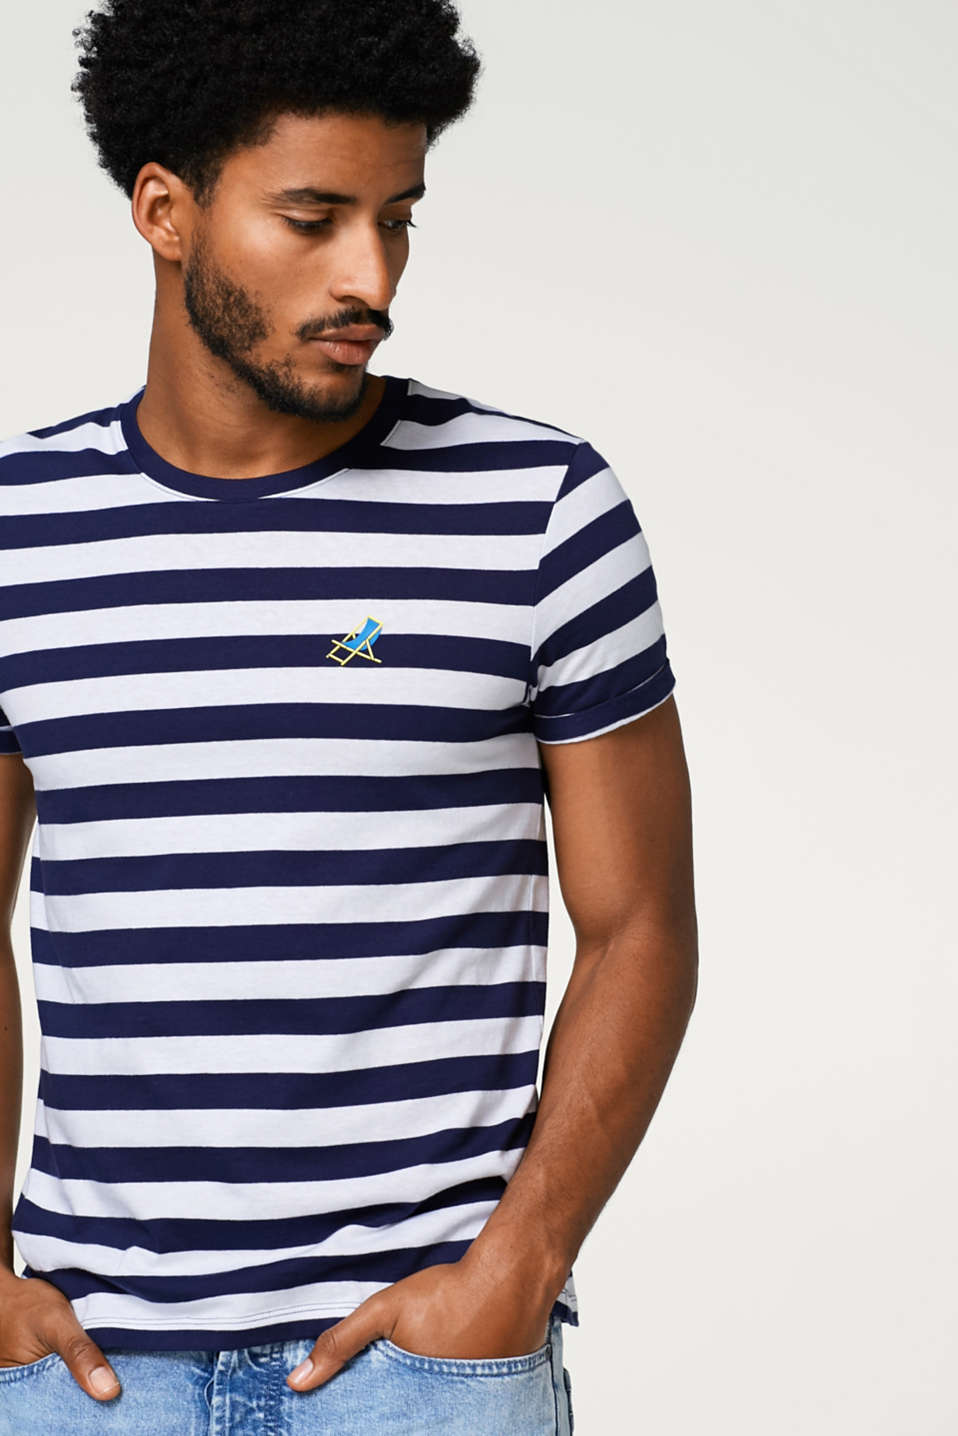 edc - Striped T-shirt with symbol print, in cotton